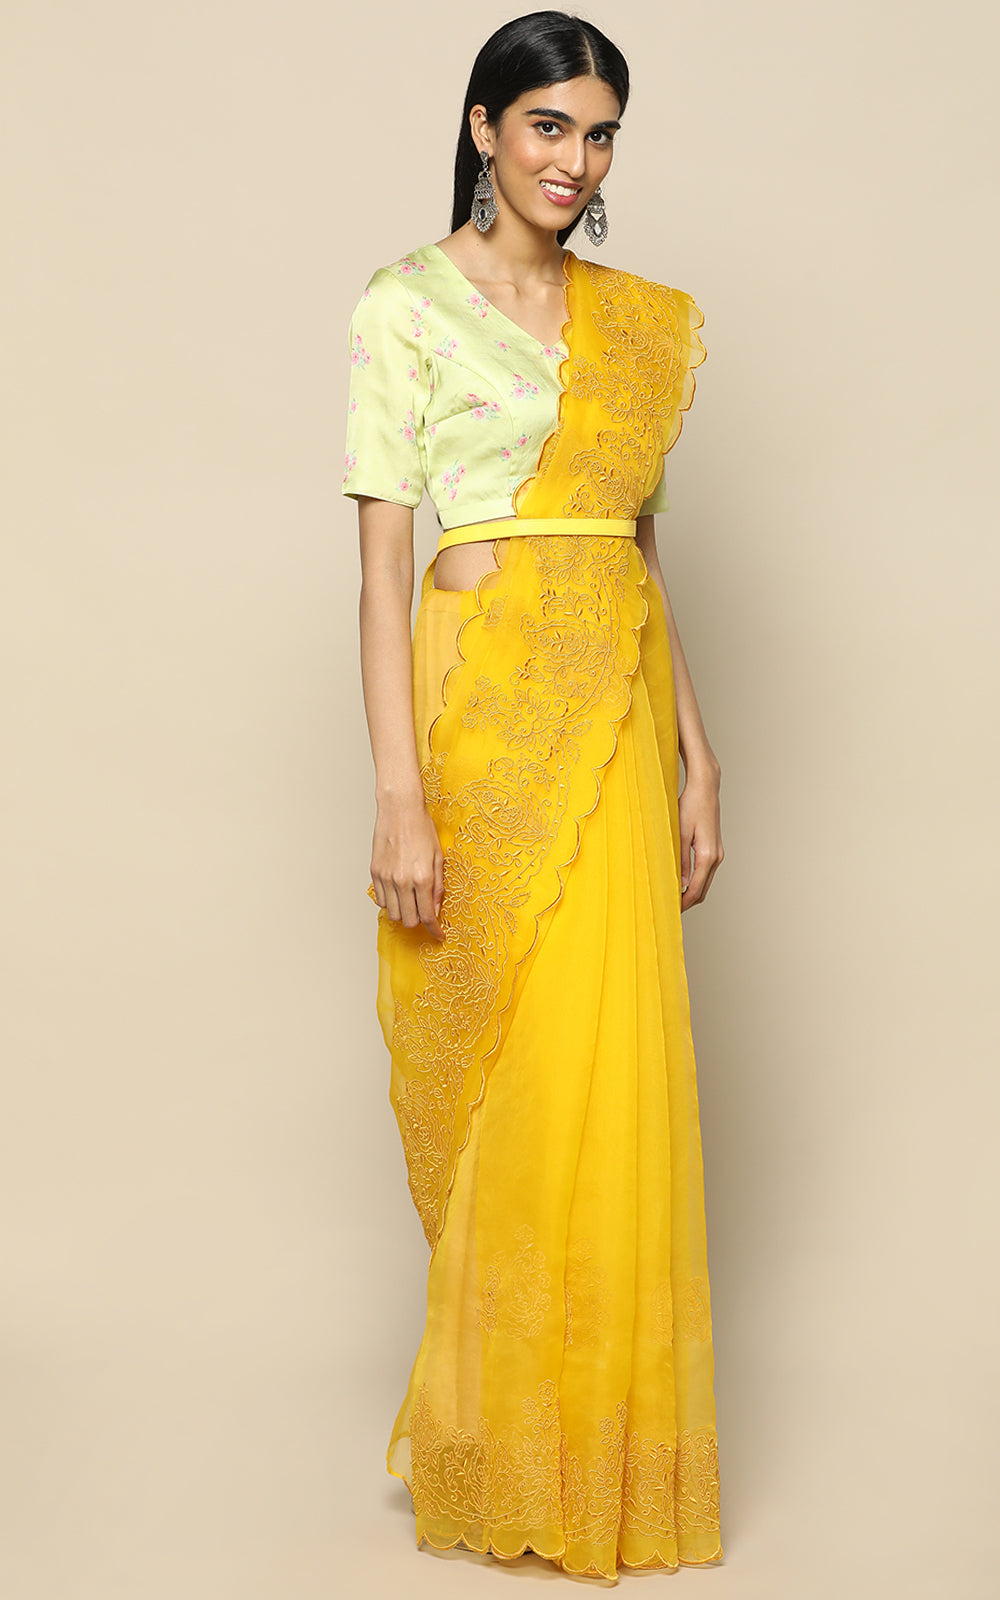 FRESH LIME YELLOW ORGANZA SILK SAREE WITH EMBROIDERY